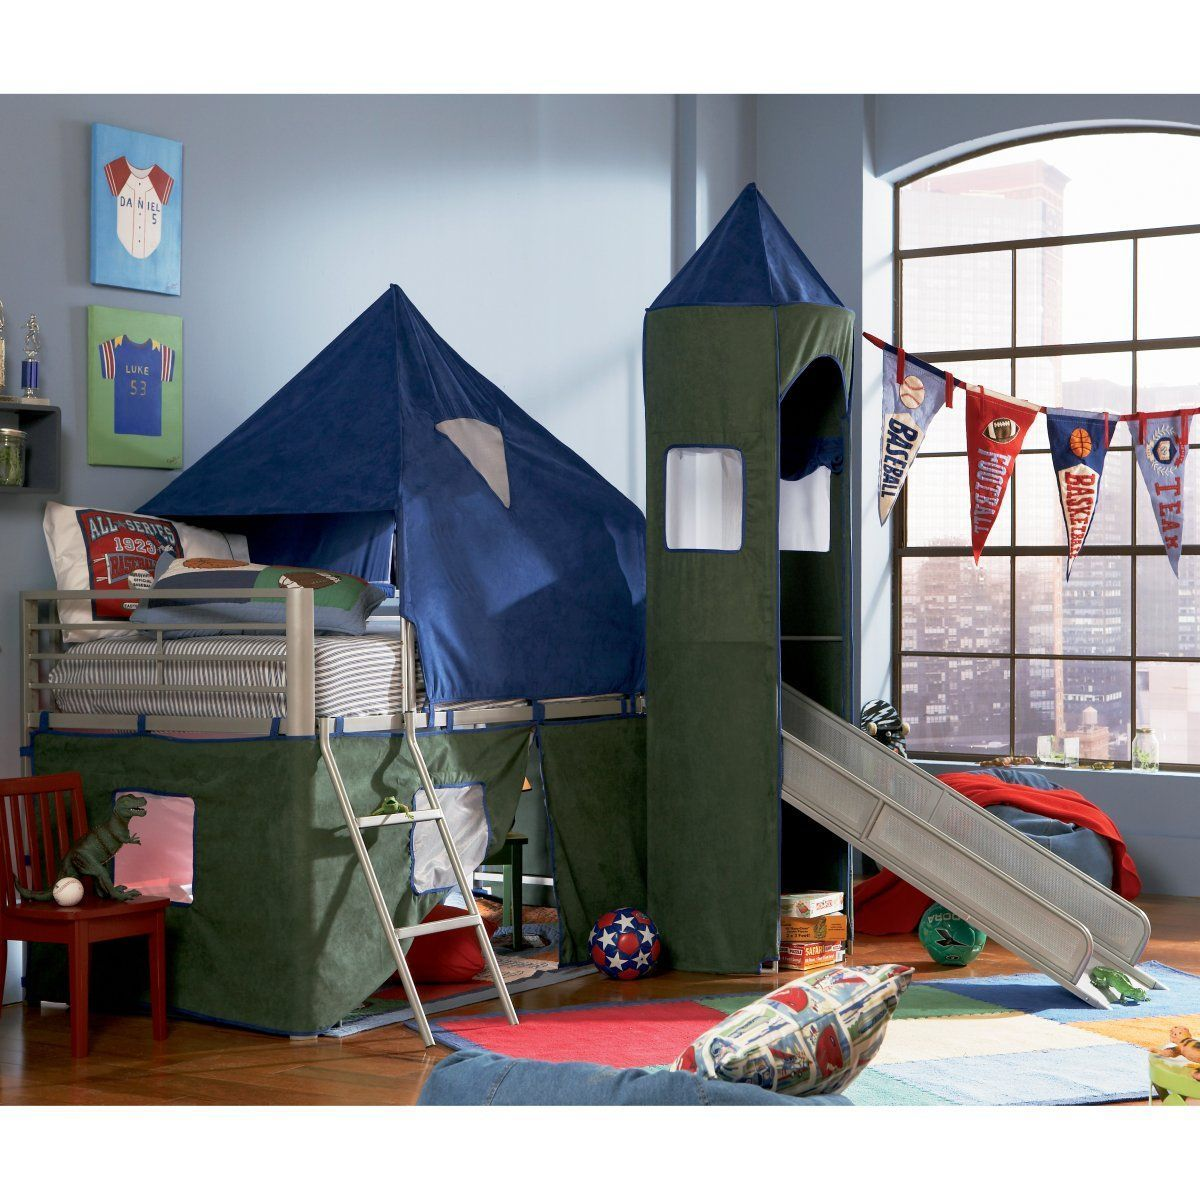 Loft bed with slide wayfair  Blue and Green Twin Tent Loft Bed with Slide  Bunk Beds for Kids